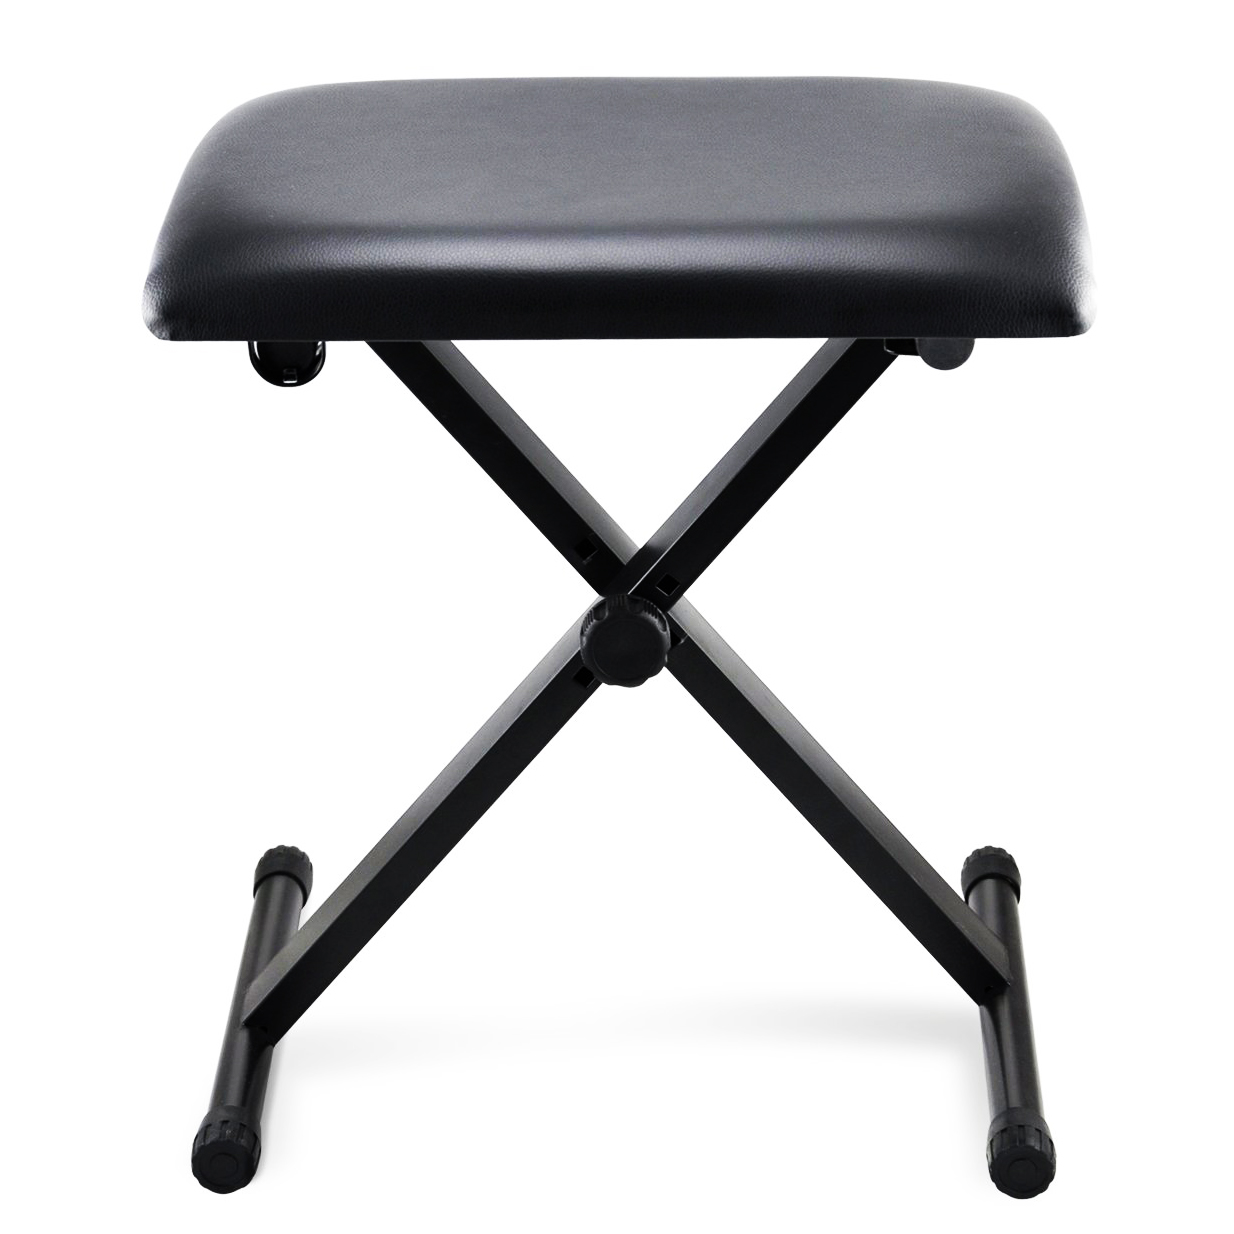 sc 1 st  Oypla & Keyboard Piano Bench Stool Seat Chair Throne Adjustable Portable ... islam-shia.org